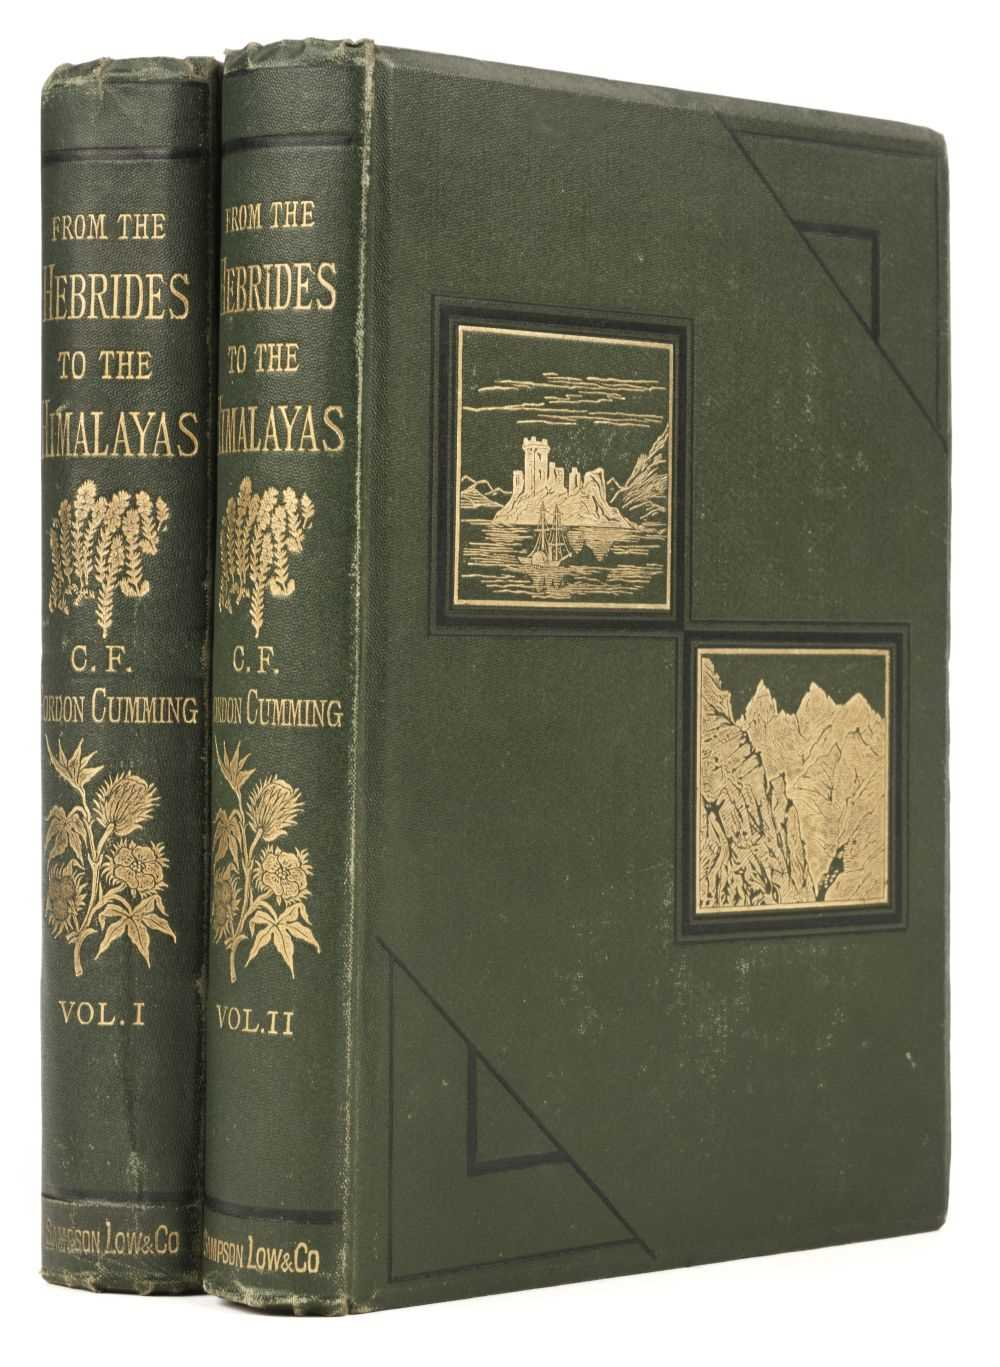 Lot 14 - Cumming (Constance F. Gordon). From the Hebrides to the Himalayas... , 2 volumes, 1st edition, 1876